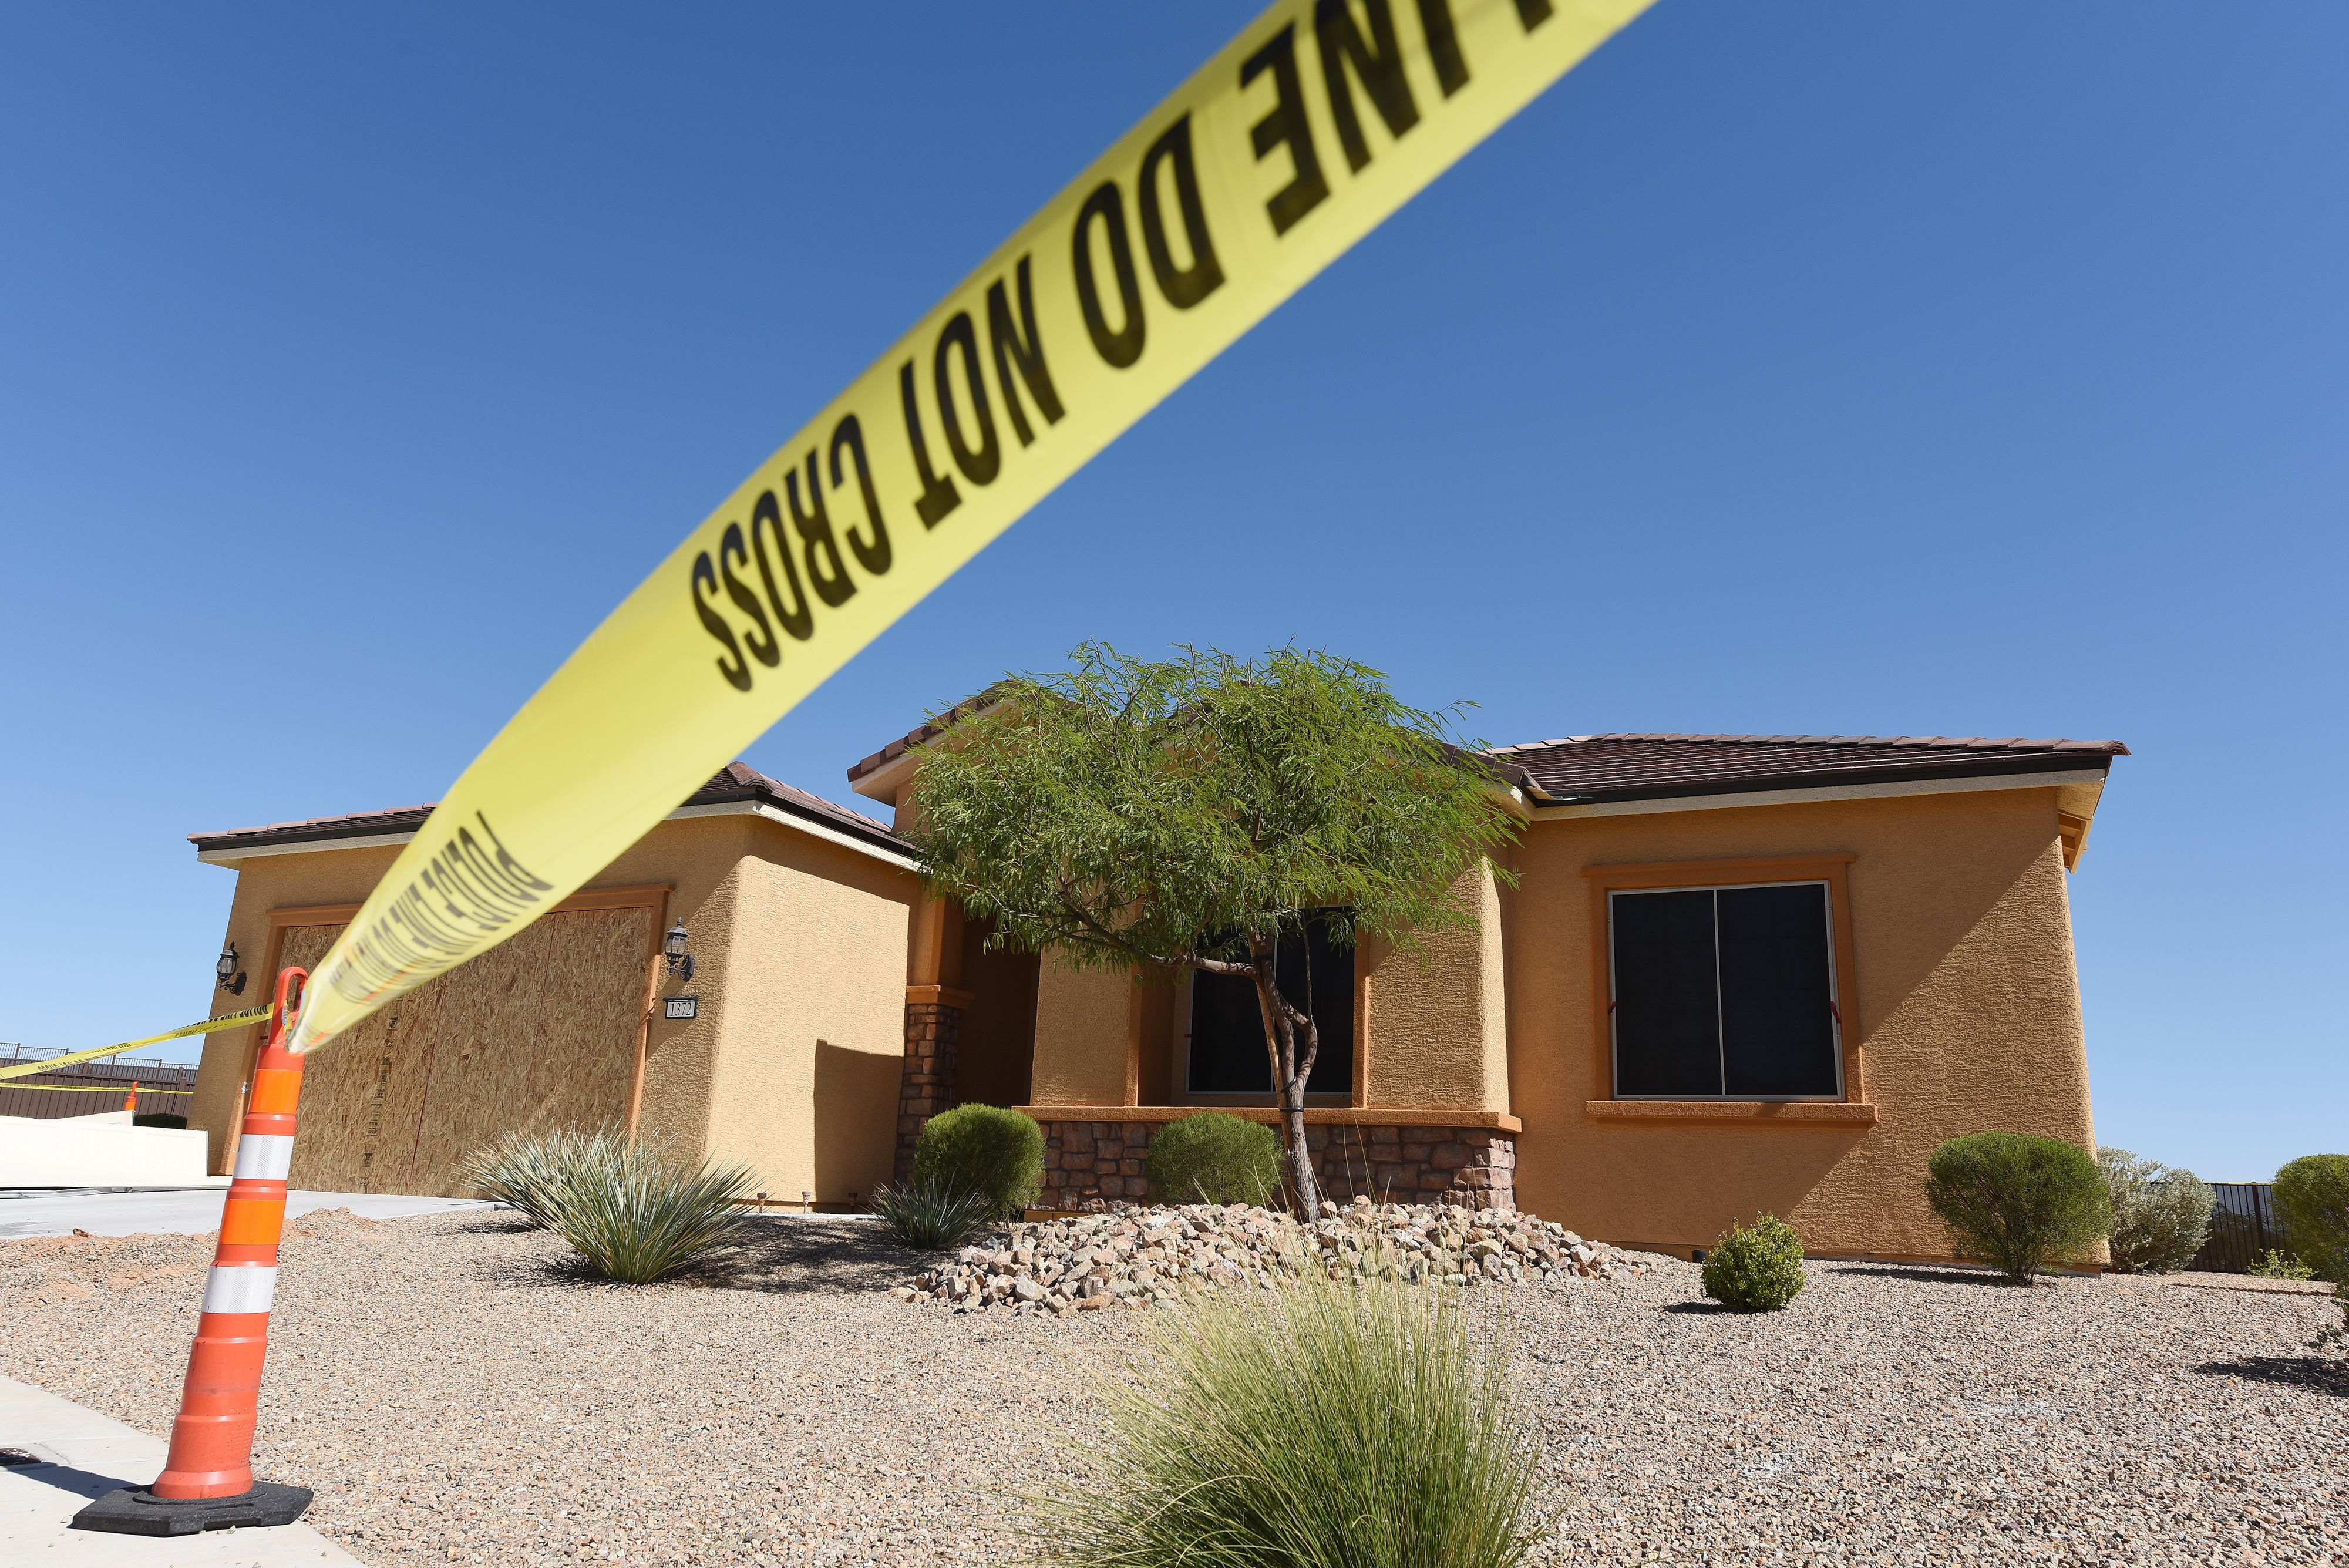 The home of Stephen Paddock is seen in Mesquite, Nevada October 3, 2017.(Photo by ROBYN BECK/AFP via Getty Images)